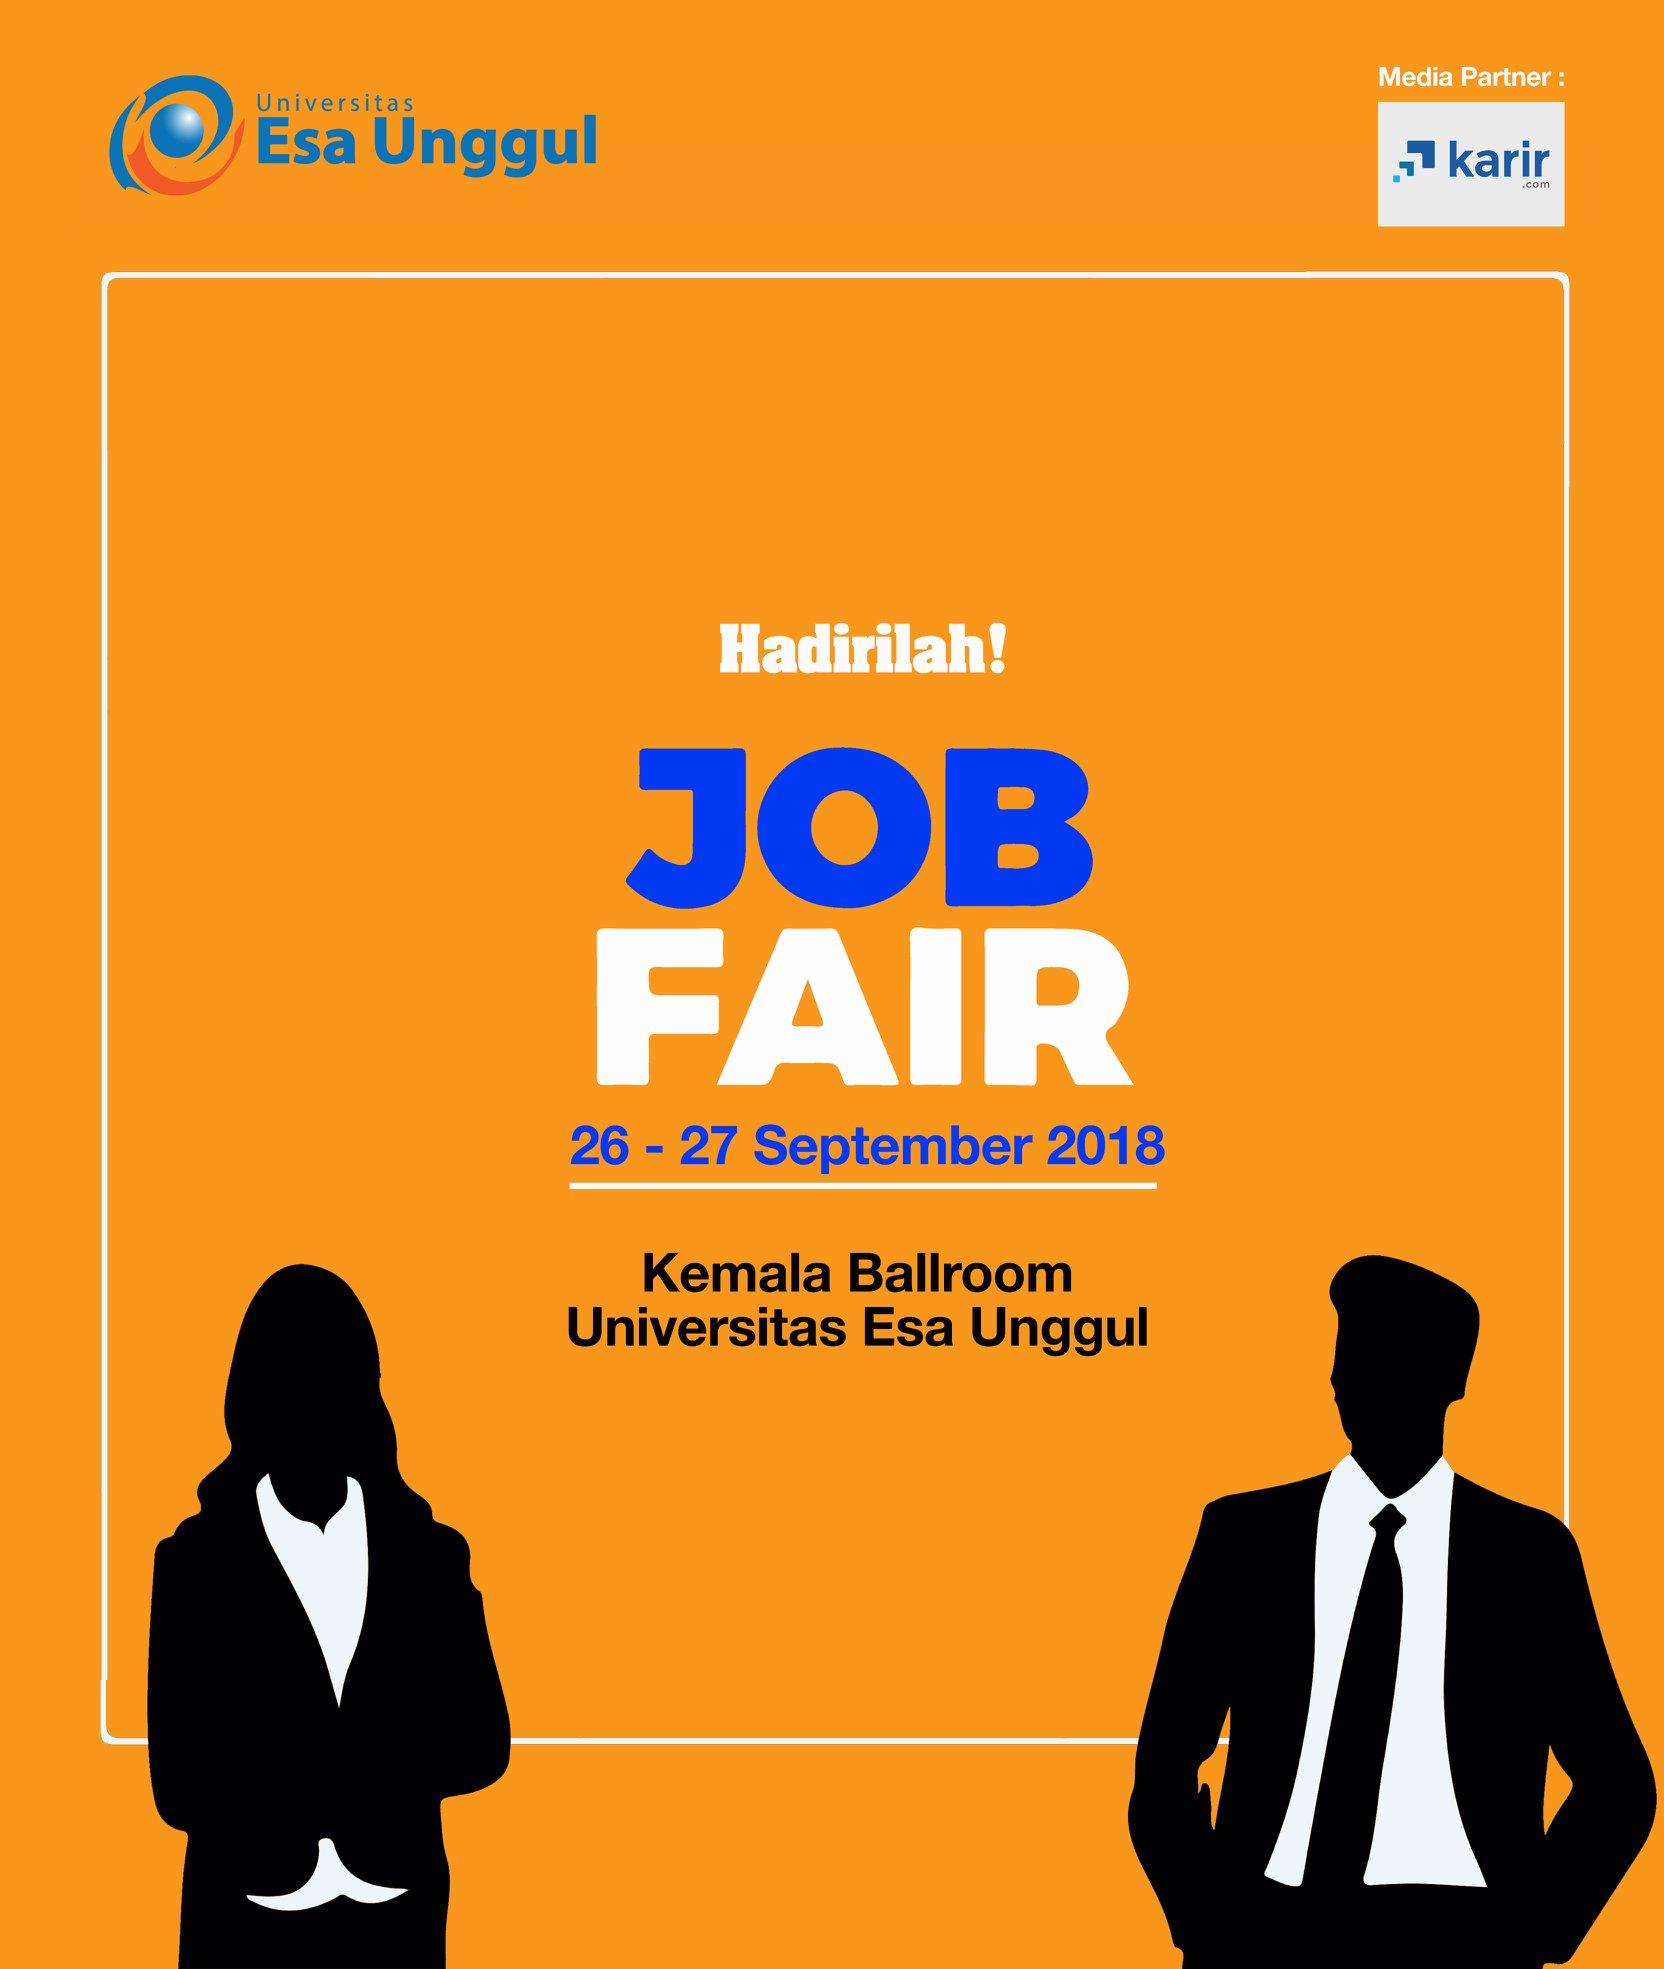 Esa Unggul Career Day & Job Fair - Kemala Ballroom, 26-27 September 2018